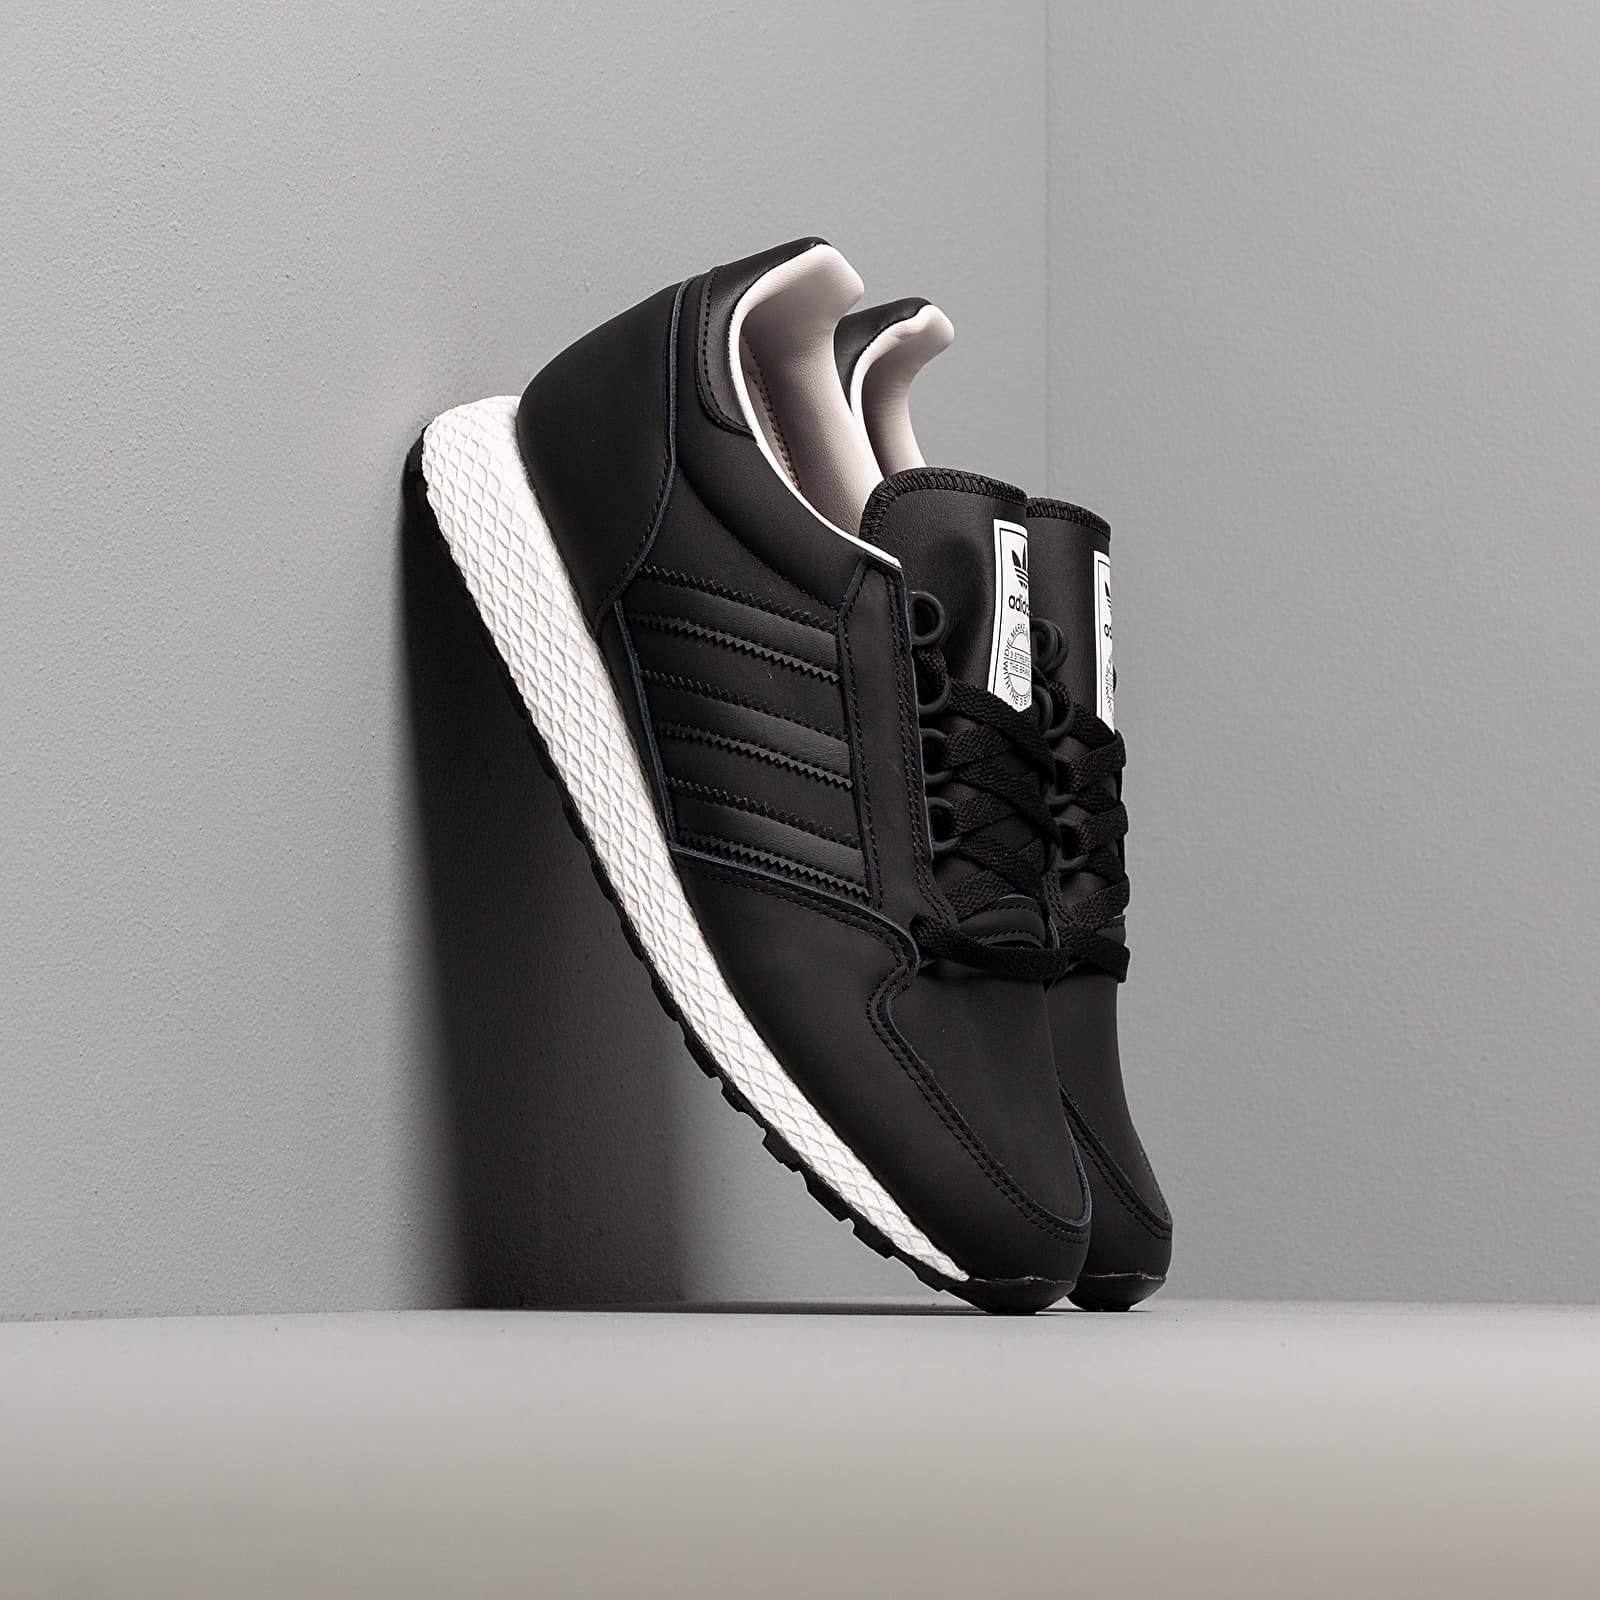 negro costo perder  Men's shoes adidas Forest Grove Core Black/ Core Black/ Orchid Tint